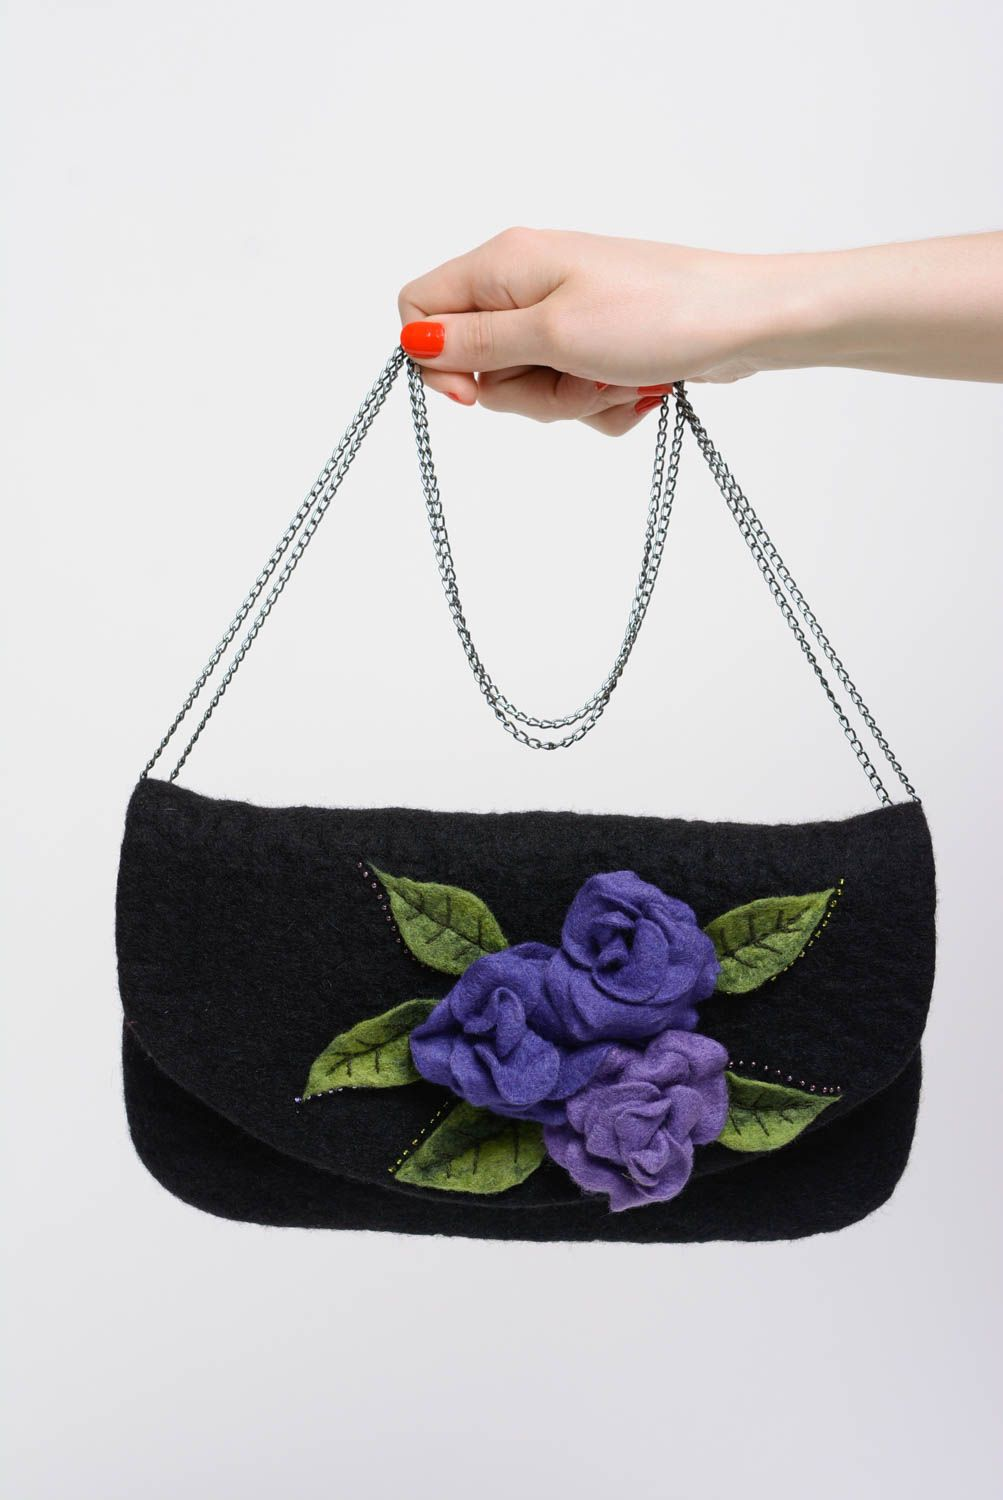 Black handbag wool felting technique on metal chain handmade designer purse photo 5